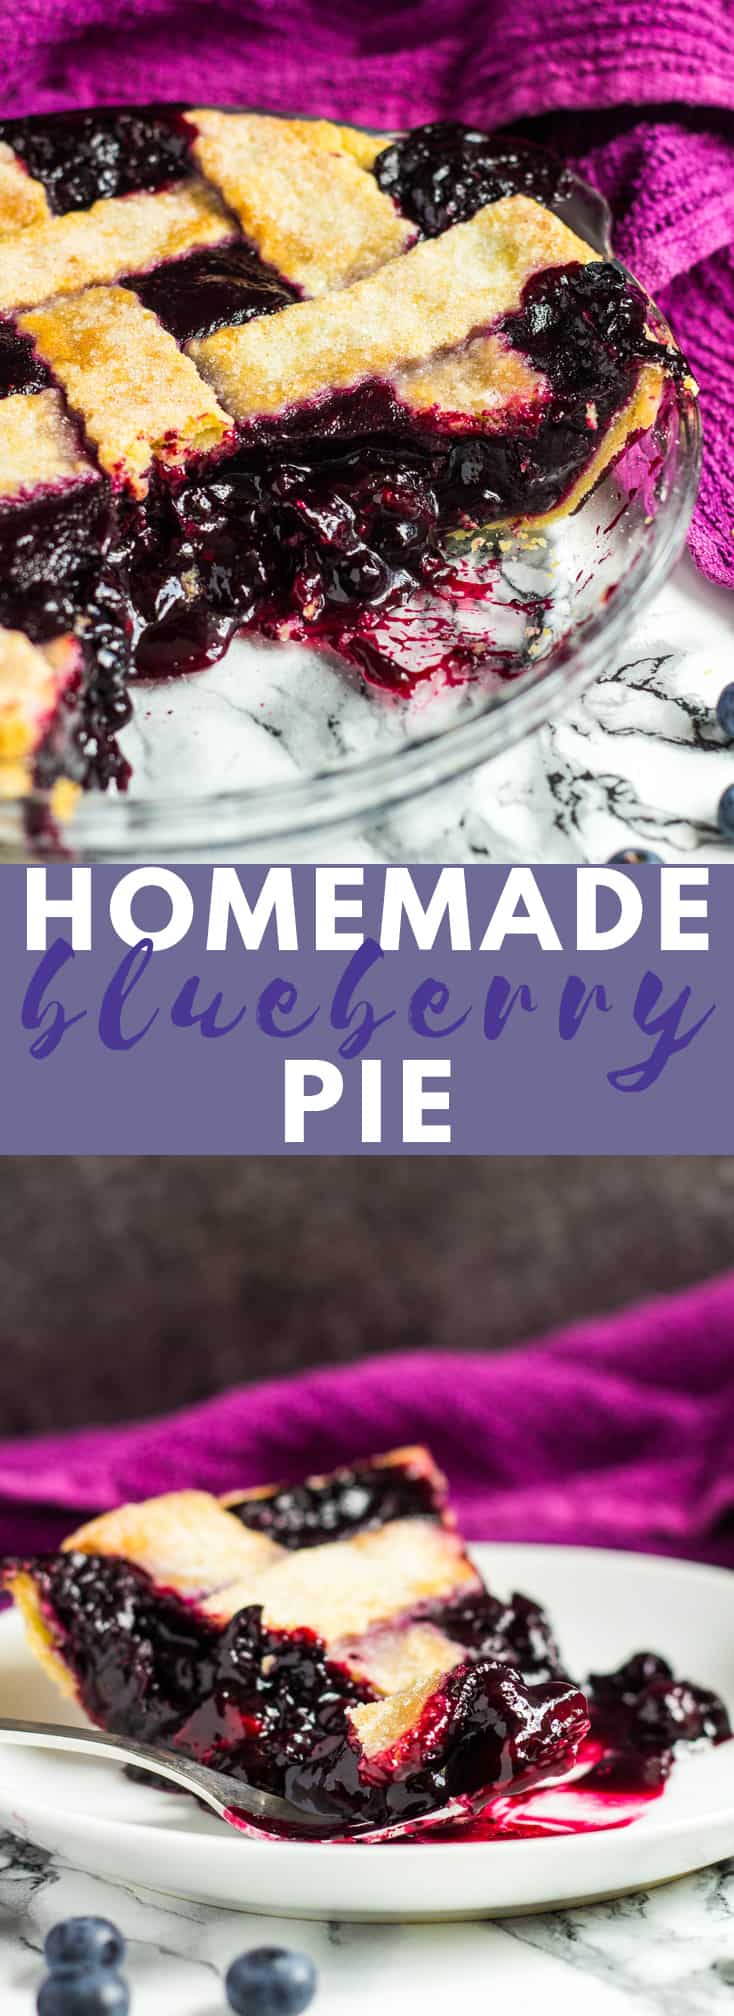 Homemade Blueberry Pie- A deliciously flaky, all-butter pie crust filled with a sweet, homemade blueberry filling! #homemade #blueberrypie #recipe